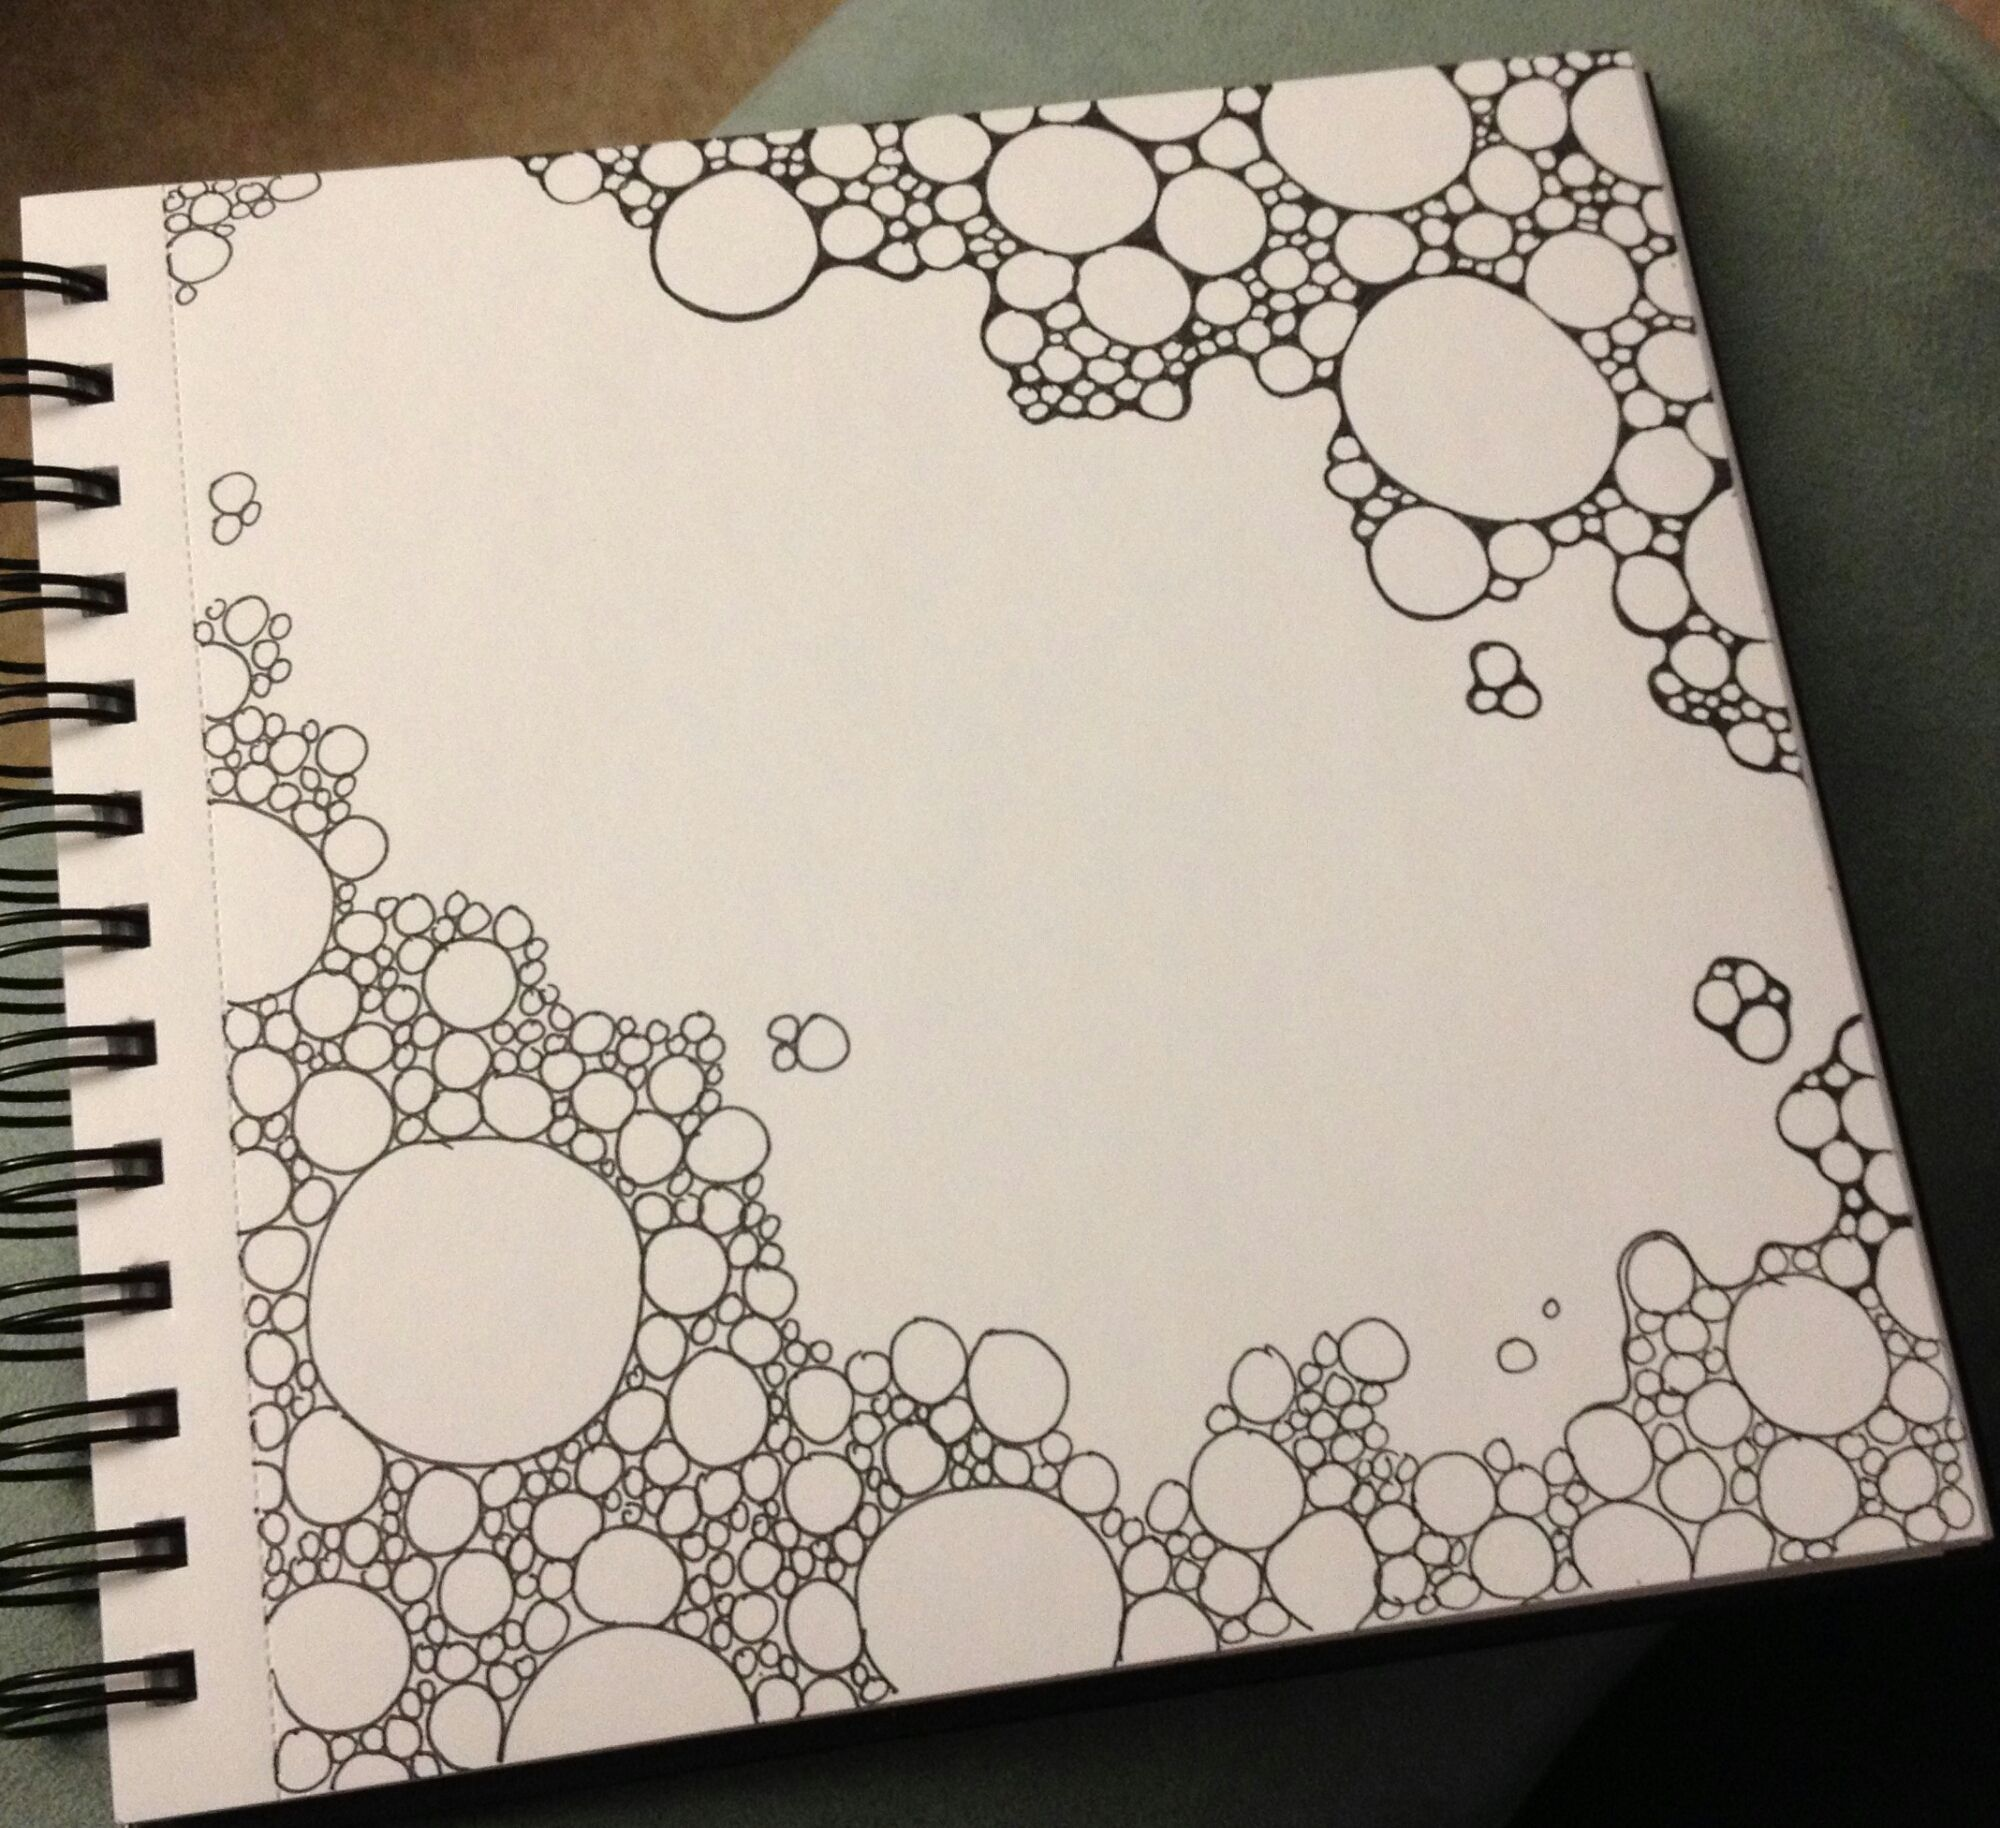 Progress Shots Of A Gravel Doodle Easy Doodles DrawingsSharpie